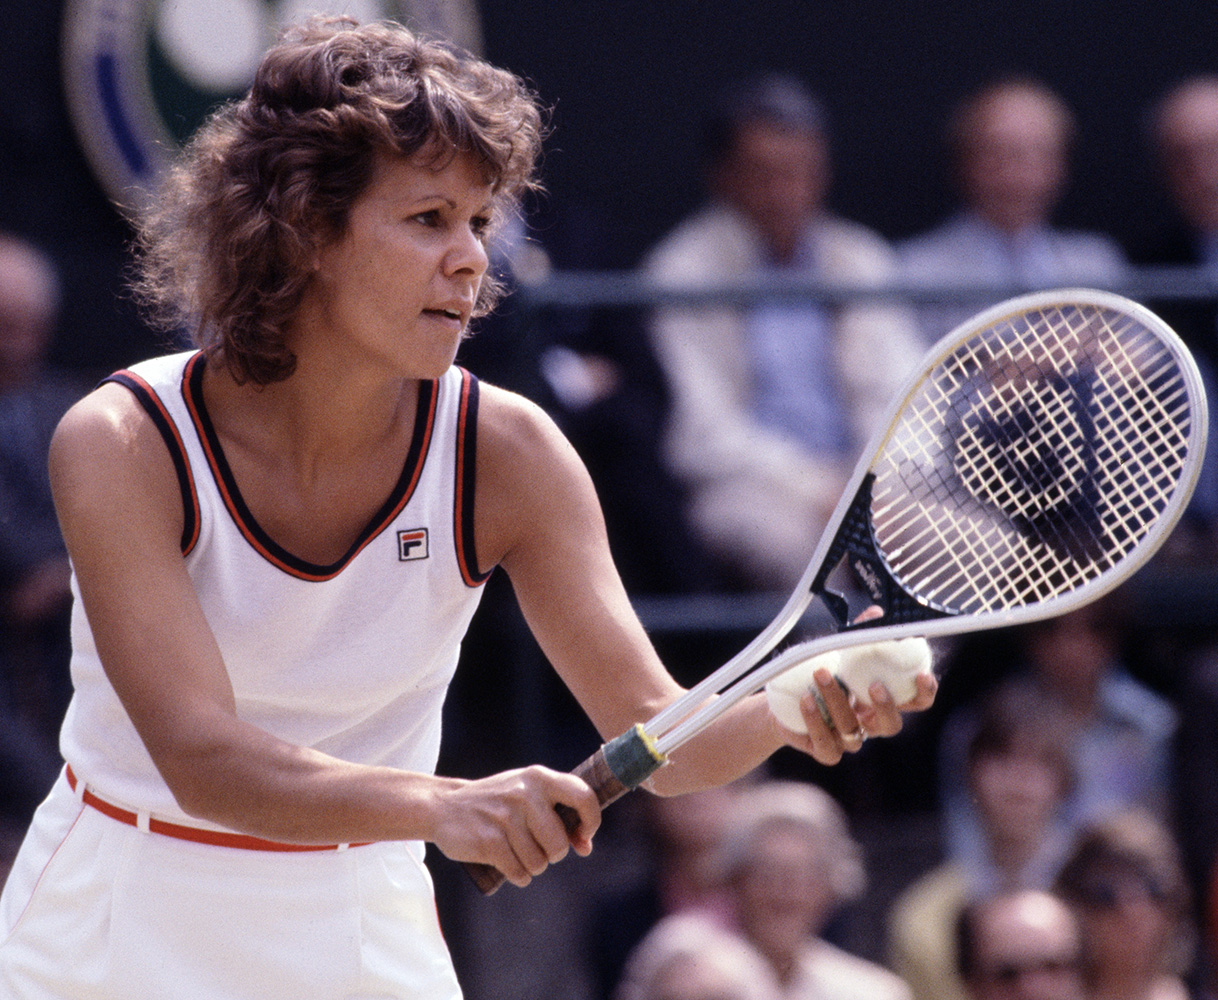 Evonne Goolagong 7 Grand Slam singles titles